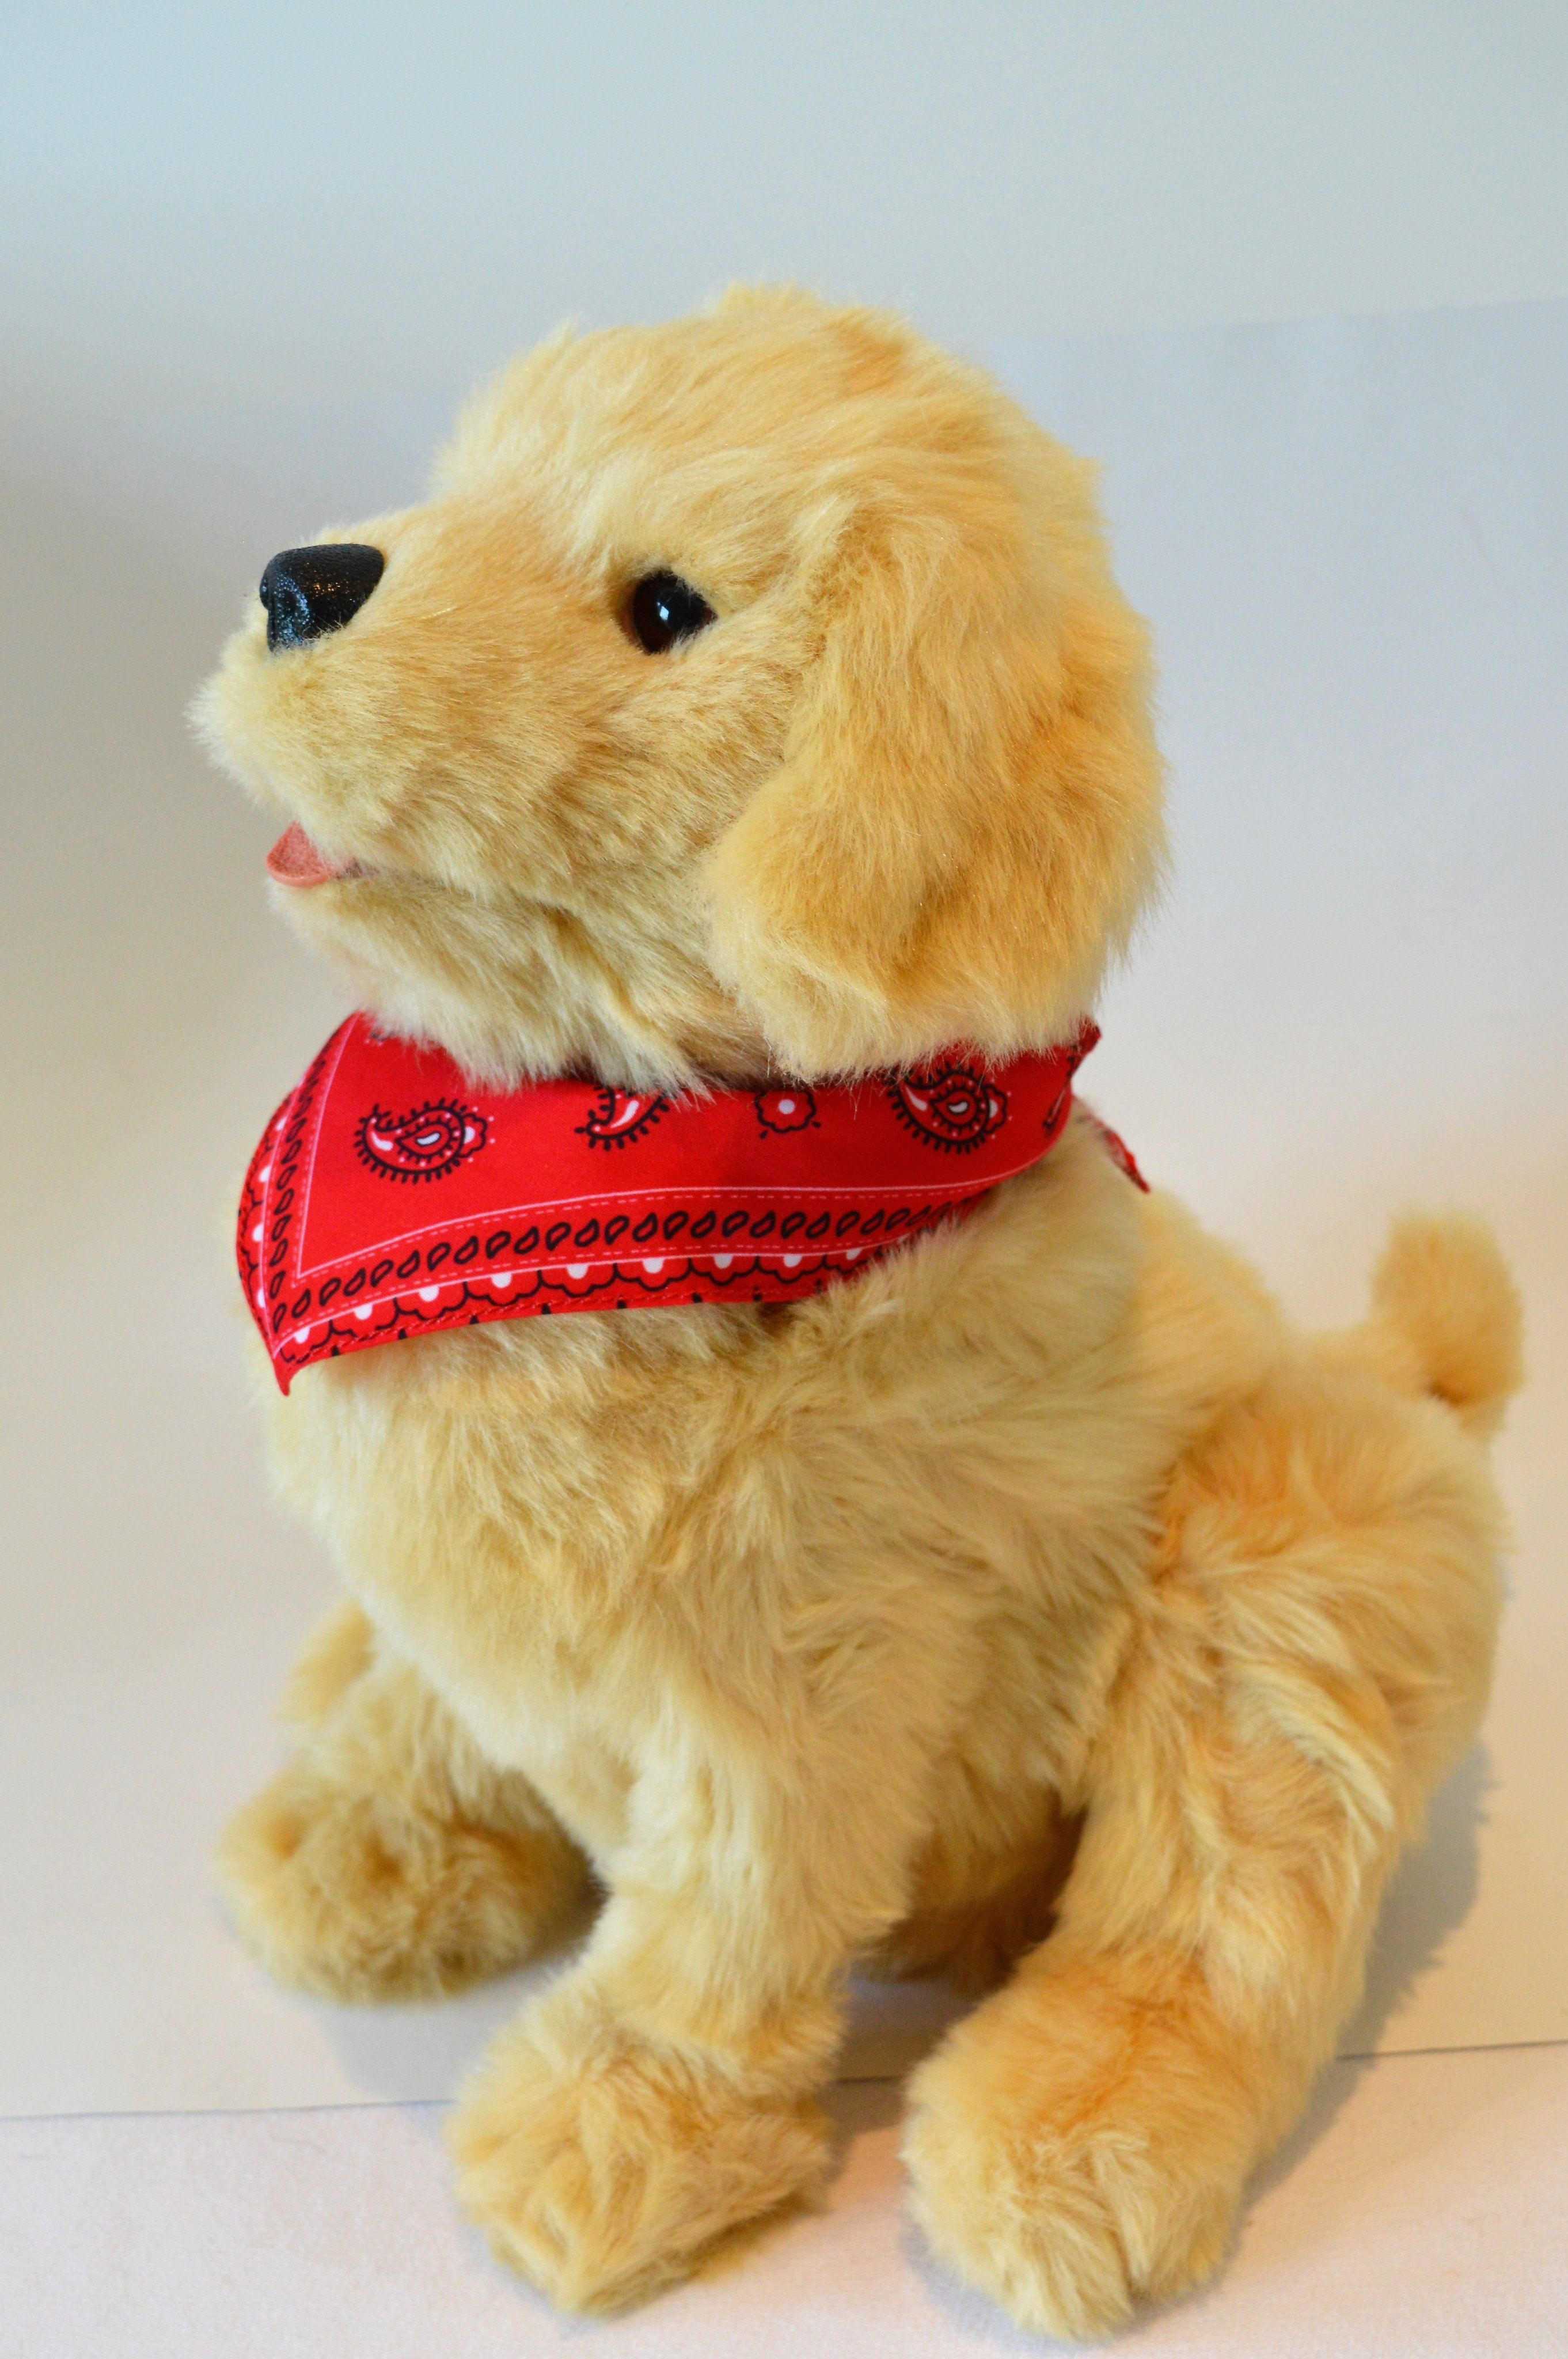 Joy For All Robotic Golden Dog Companion Pet For People With